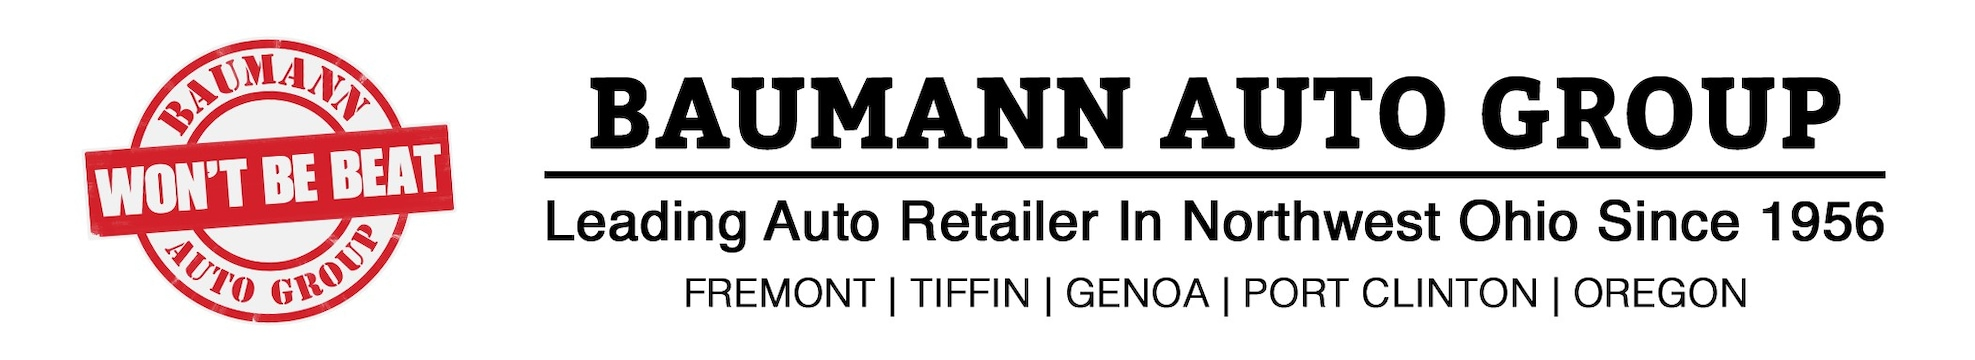 Baumann Auto Group